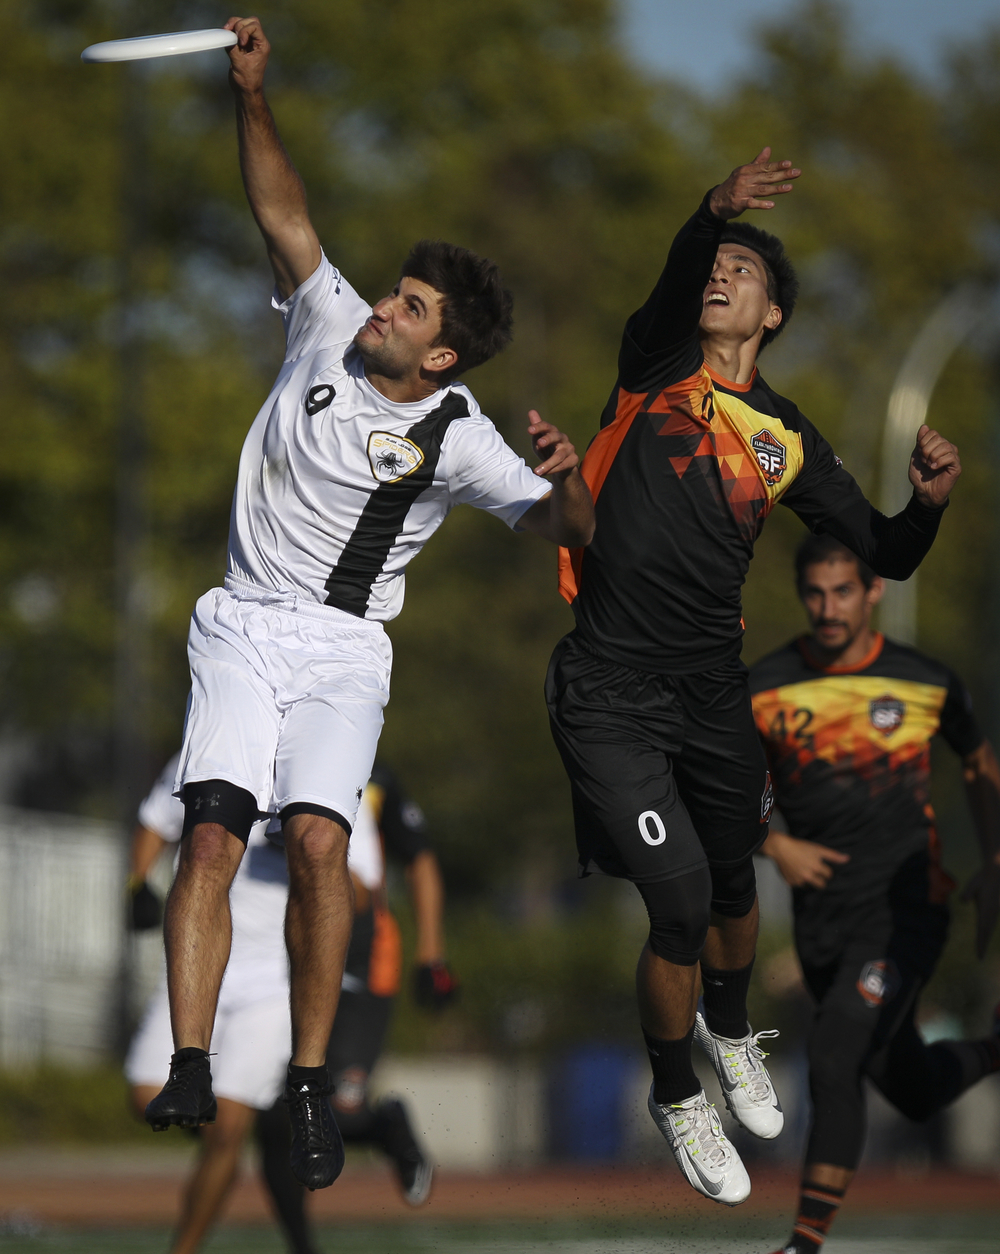 San Jose Spiders player Cassidy Rasmussen (in white) snatches a throw as San Francisco FlameThrowers player Jason Yun contests during an ultimate frisbee game at Laney College Football Field in Oakland, CA, on Saturday, July 18, 2015.